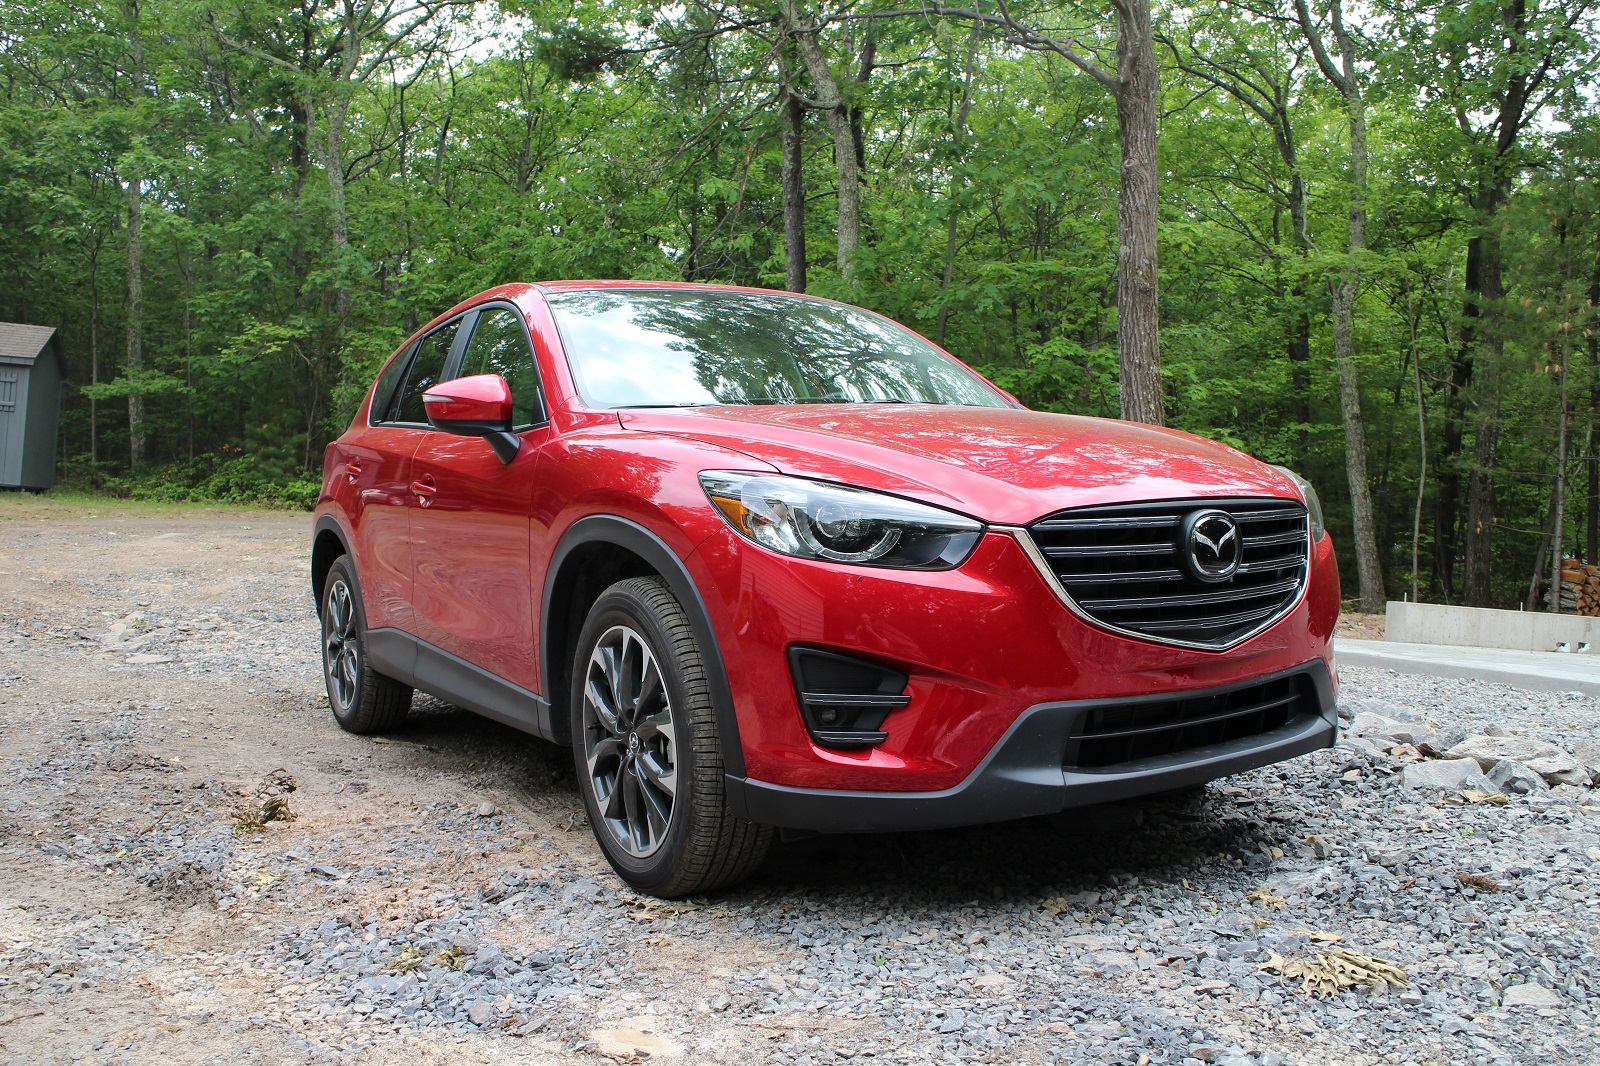 a redesigns cx option release solid crossover suv rendering small rreview changes mazda date